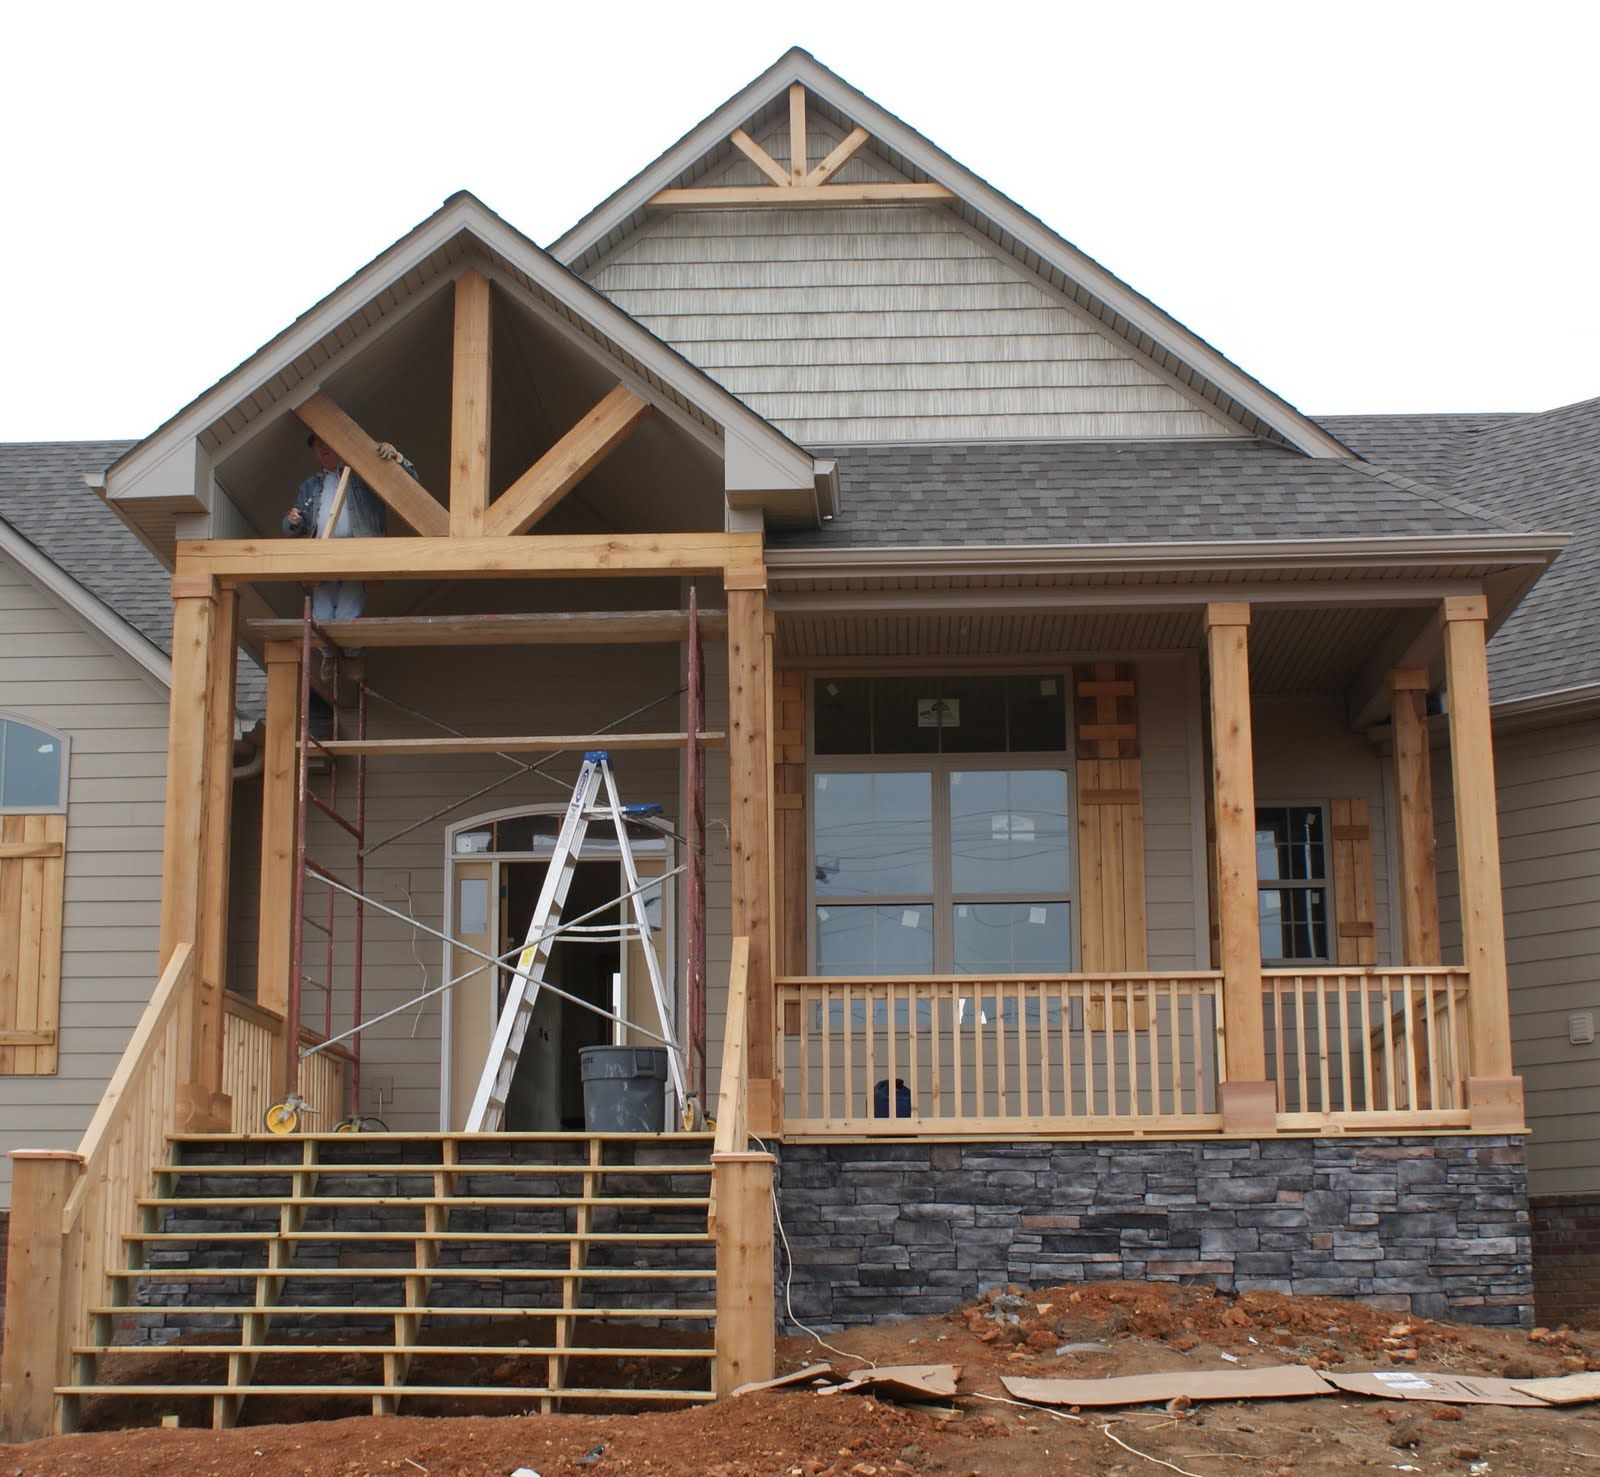 Wood Columns For Homes : Give your home an exterior facelift by replacing worn or